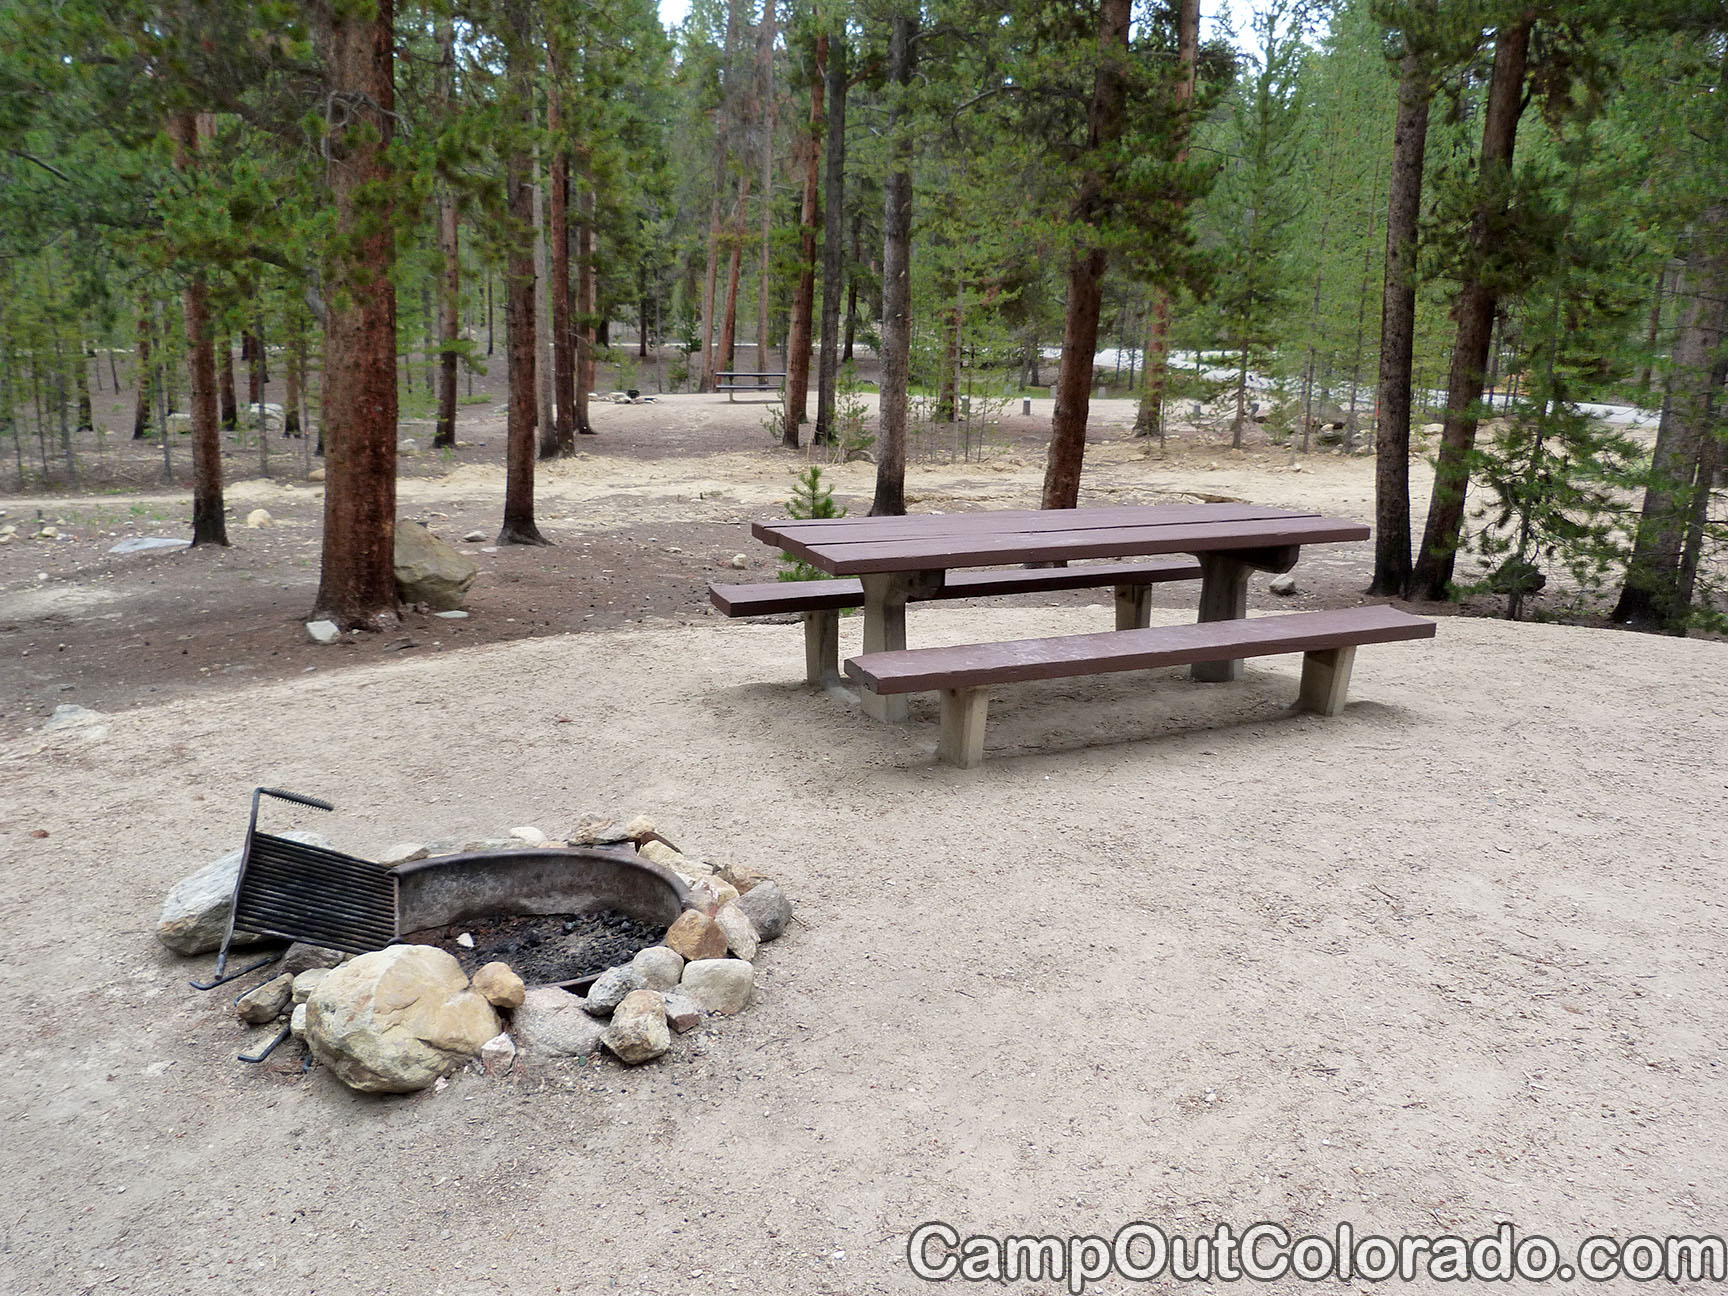 Camp-out-colorado-molly-brown-turquoise-lake-low-fire